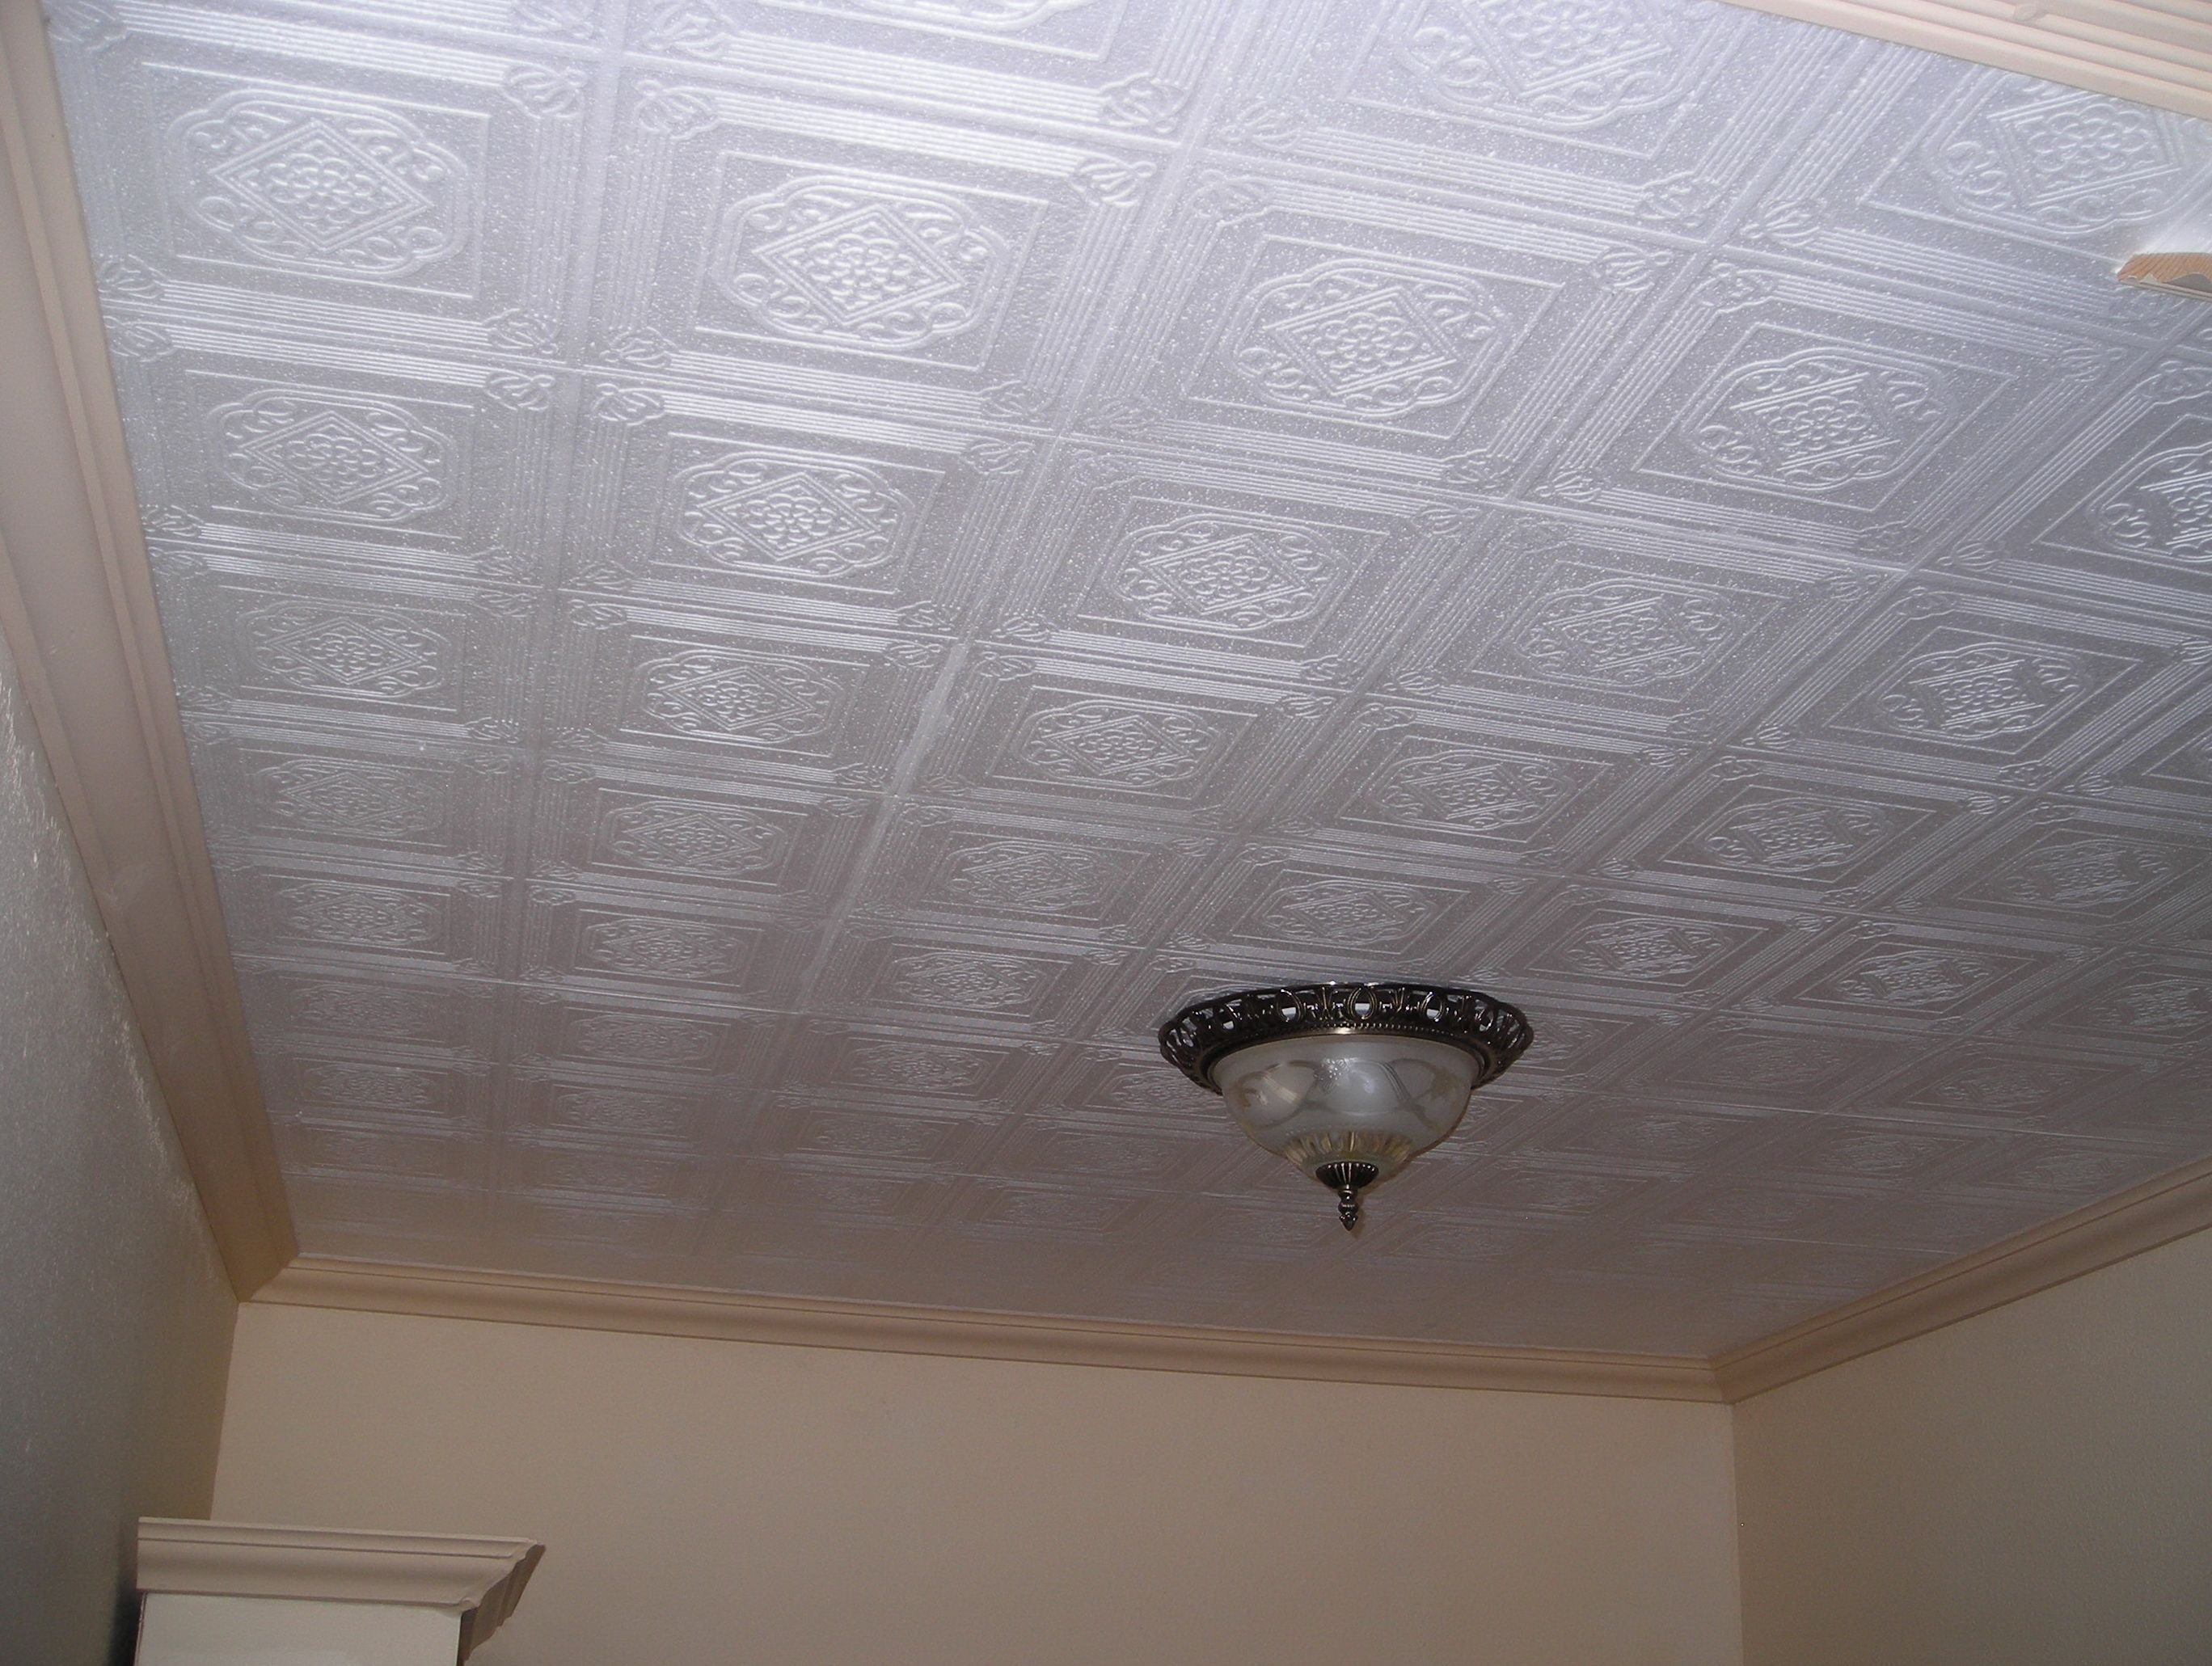 Polystyrene ceiling tiles fire hazard http polystyrene ceiling tiles fire hazard dailygadgetfo Images